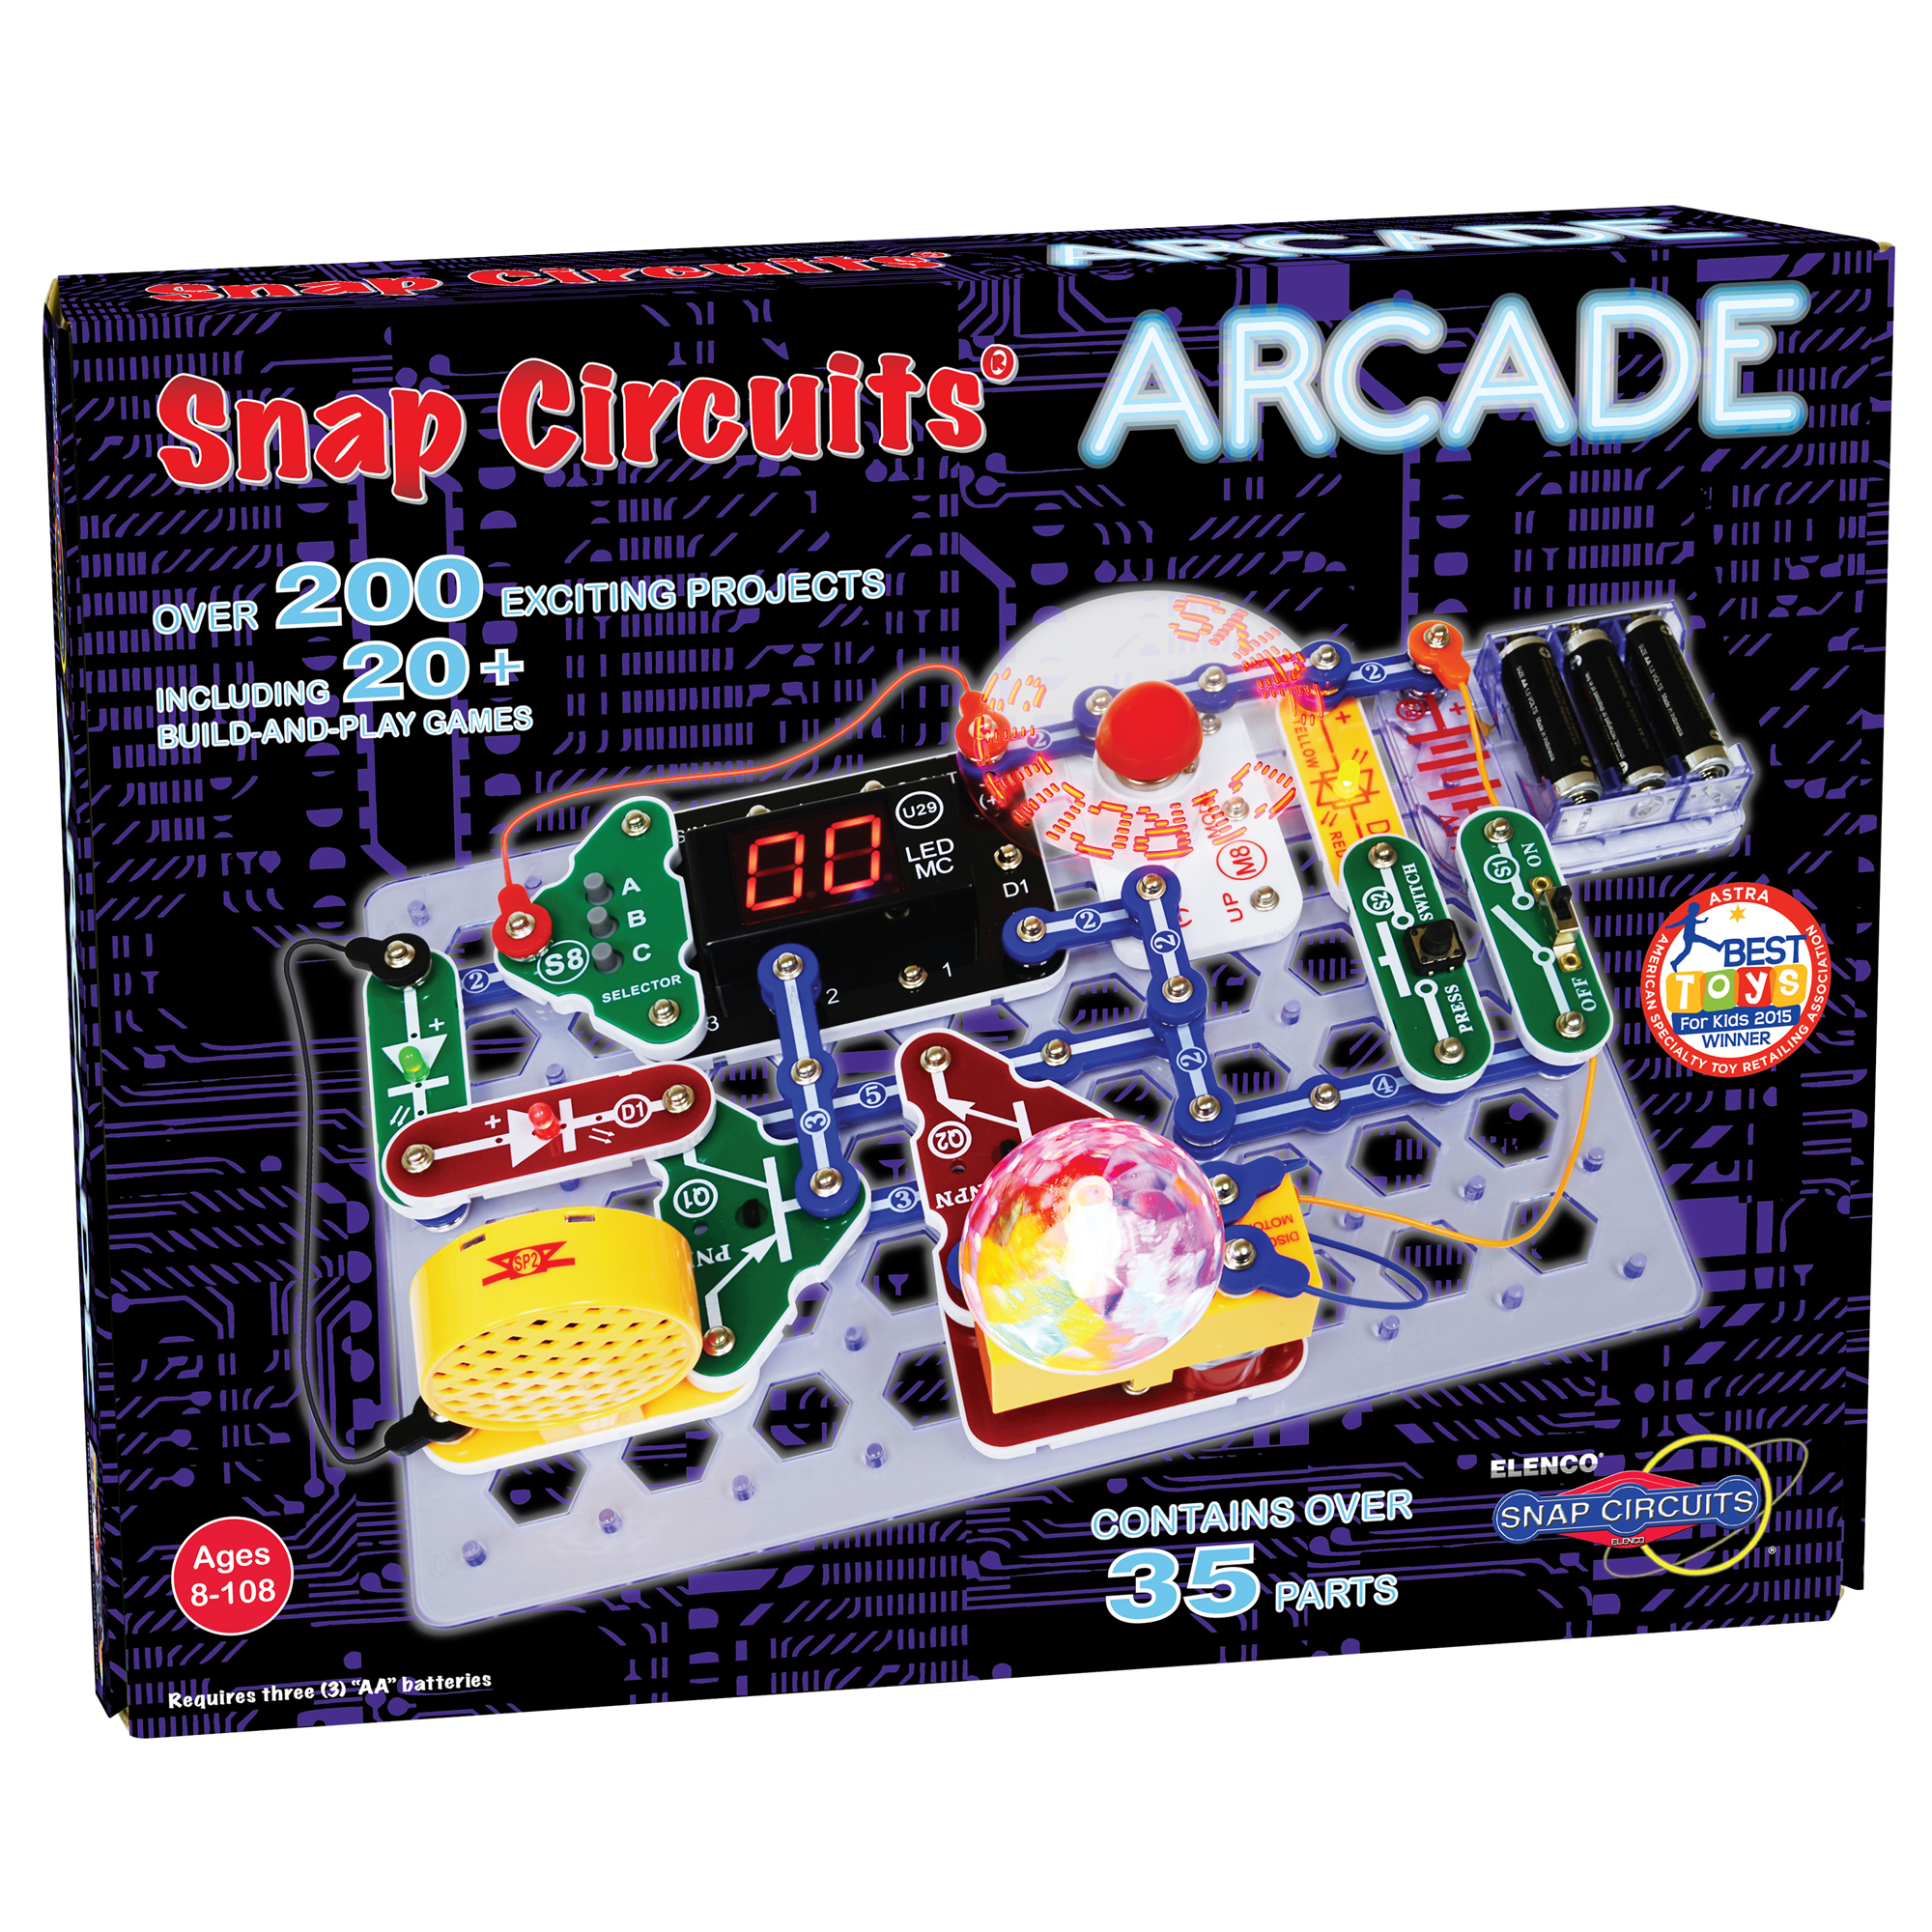 snap circuits arcade elenco rh elenco com snap circuits jr instruction manual snap circuits jr instruction manual